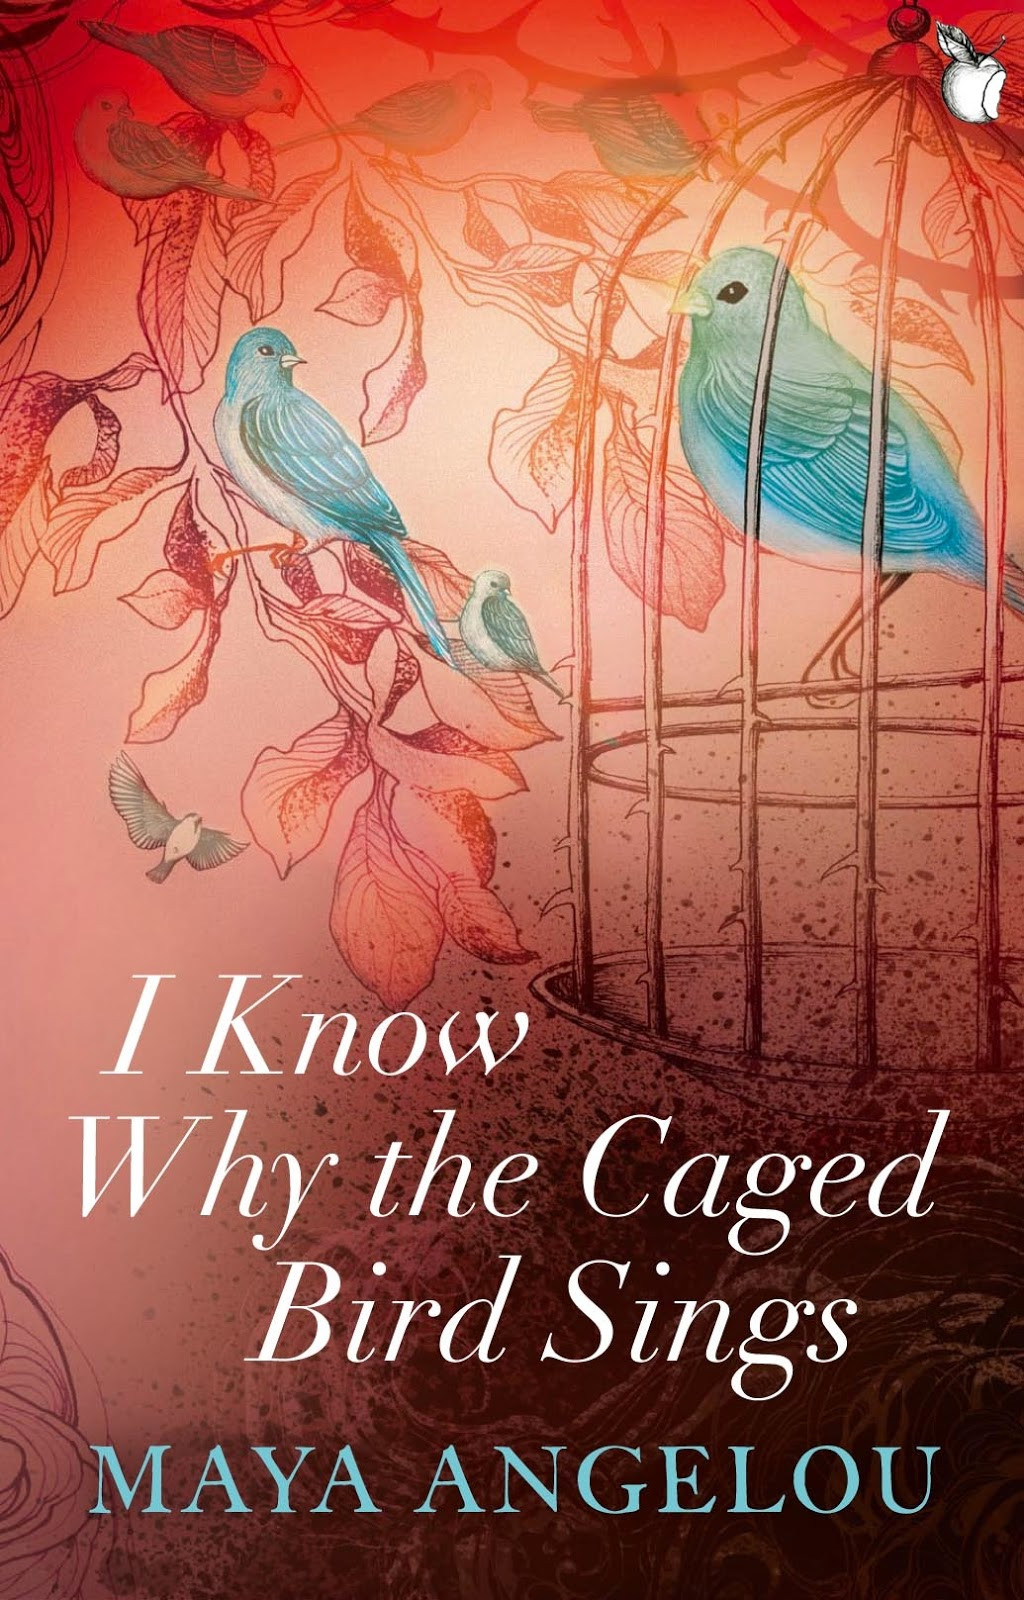 """an analysis of i know why the caged bird sings a book by maya angelou Analysis of """"i know why the caged bird sings"""" published in 1983, """"i know why the caged bird sings"""" is a poem written by maya angelou through this poem, she holds for us to see the sufferings of the african-americans."""